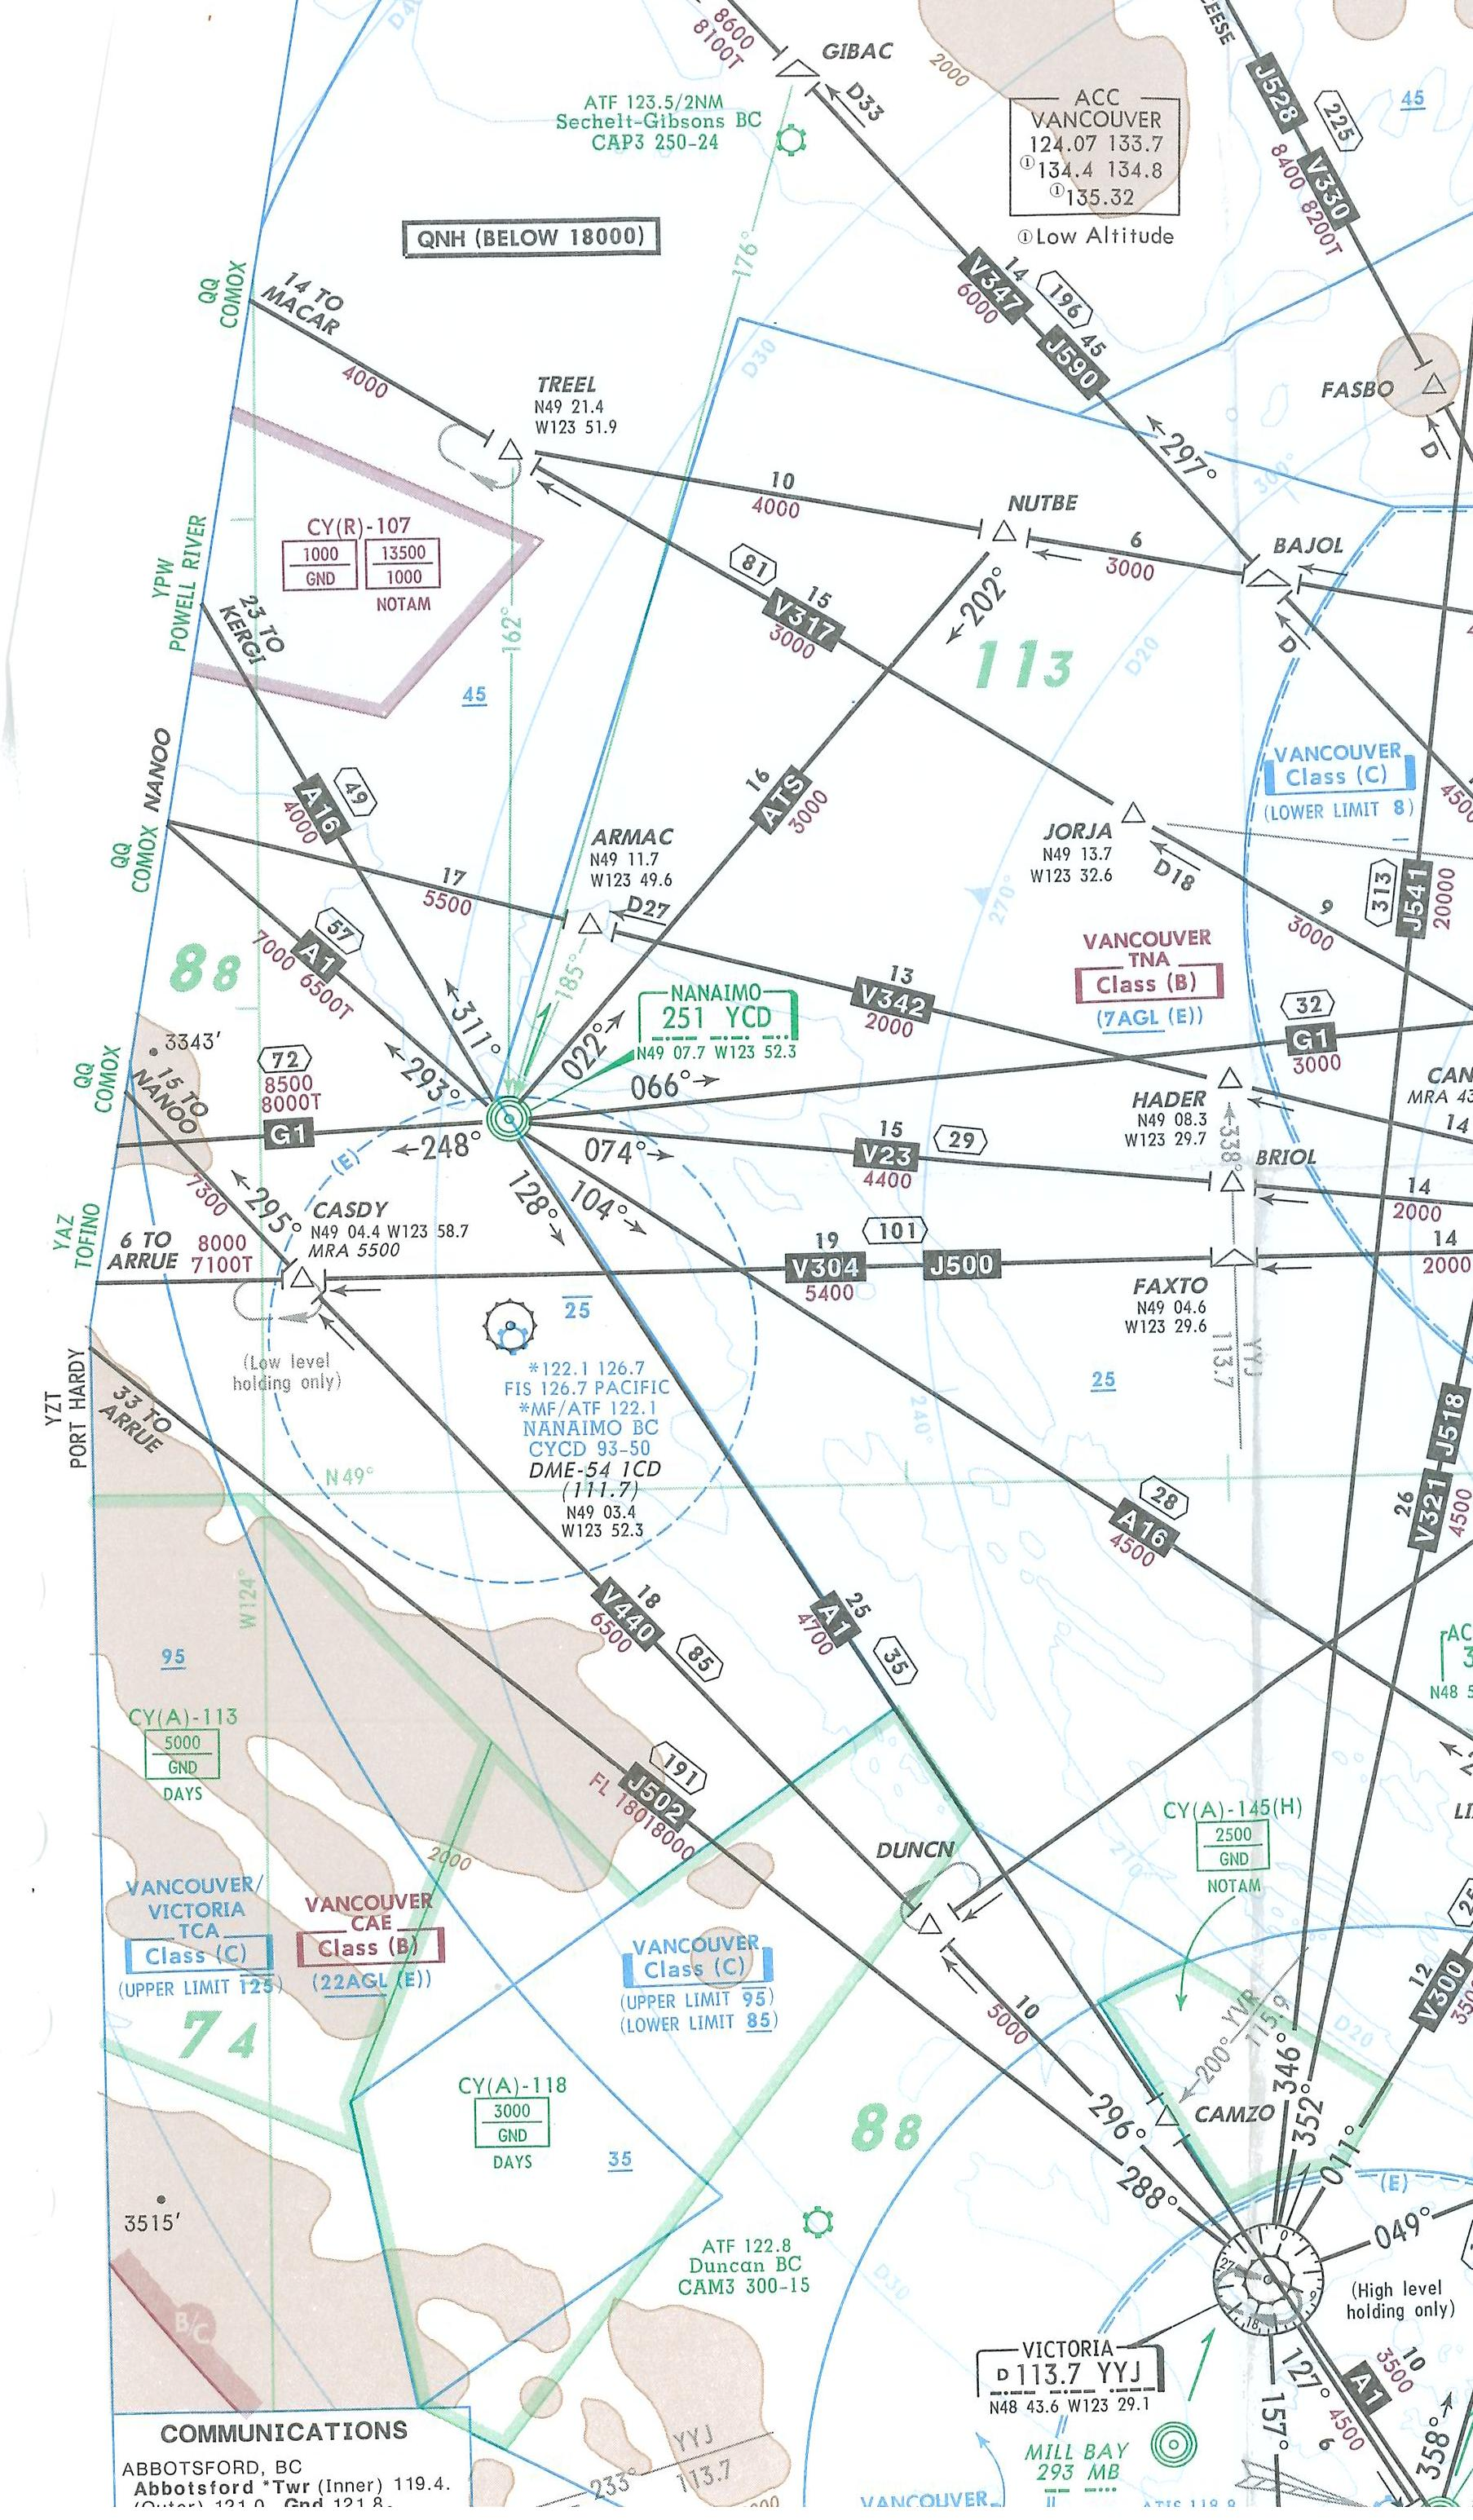 Map Room, IFR Terminal Chart, Vancouver West